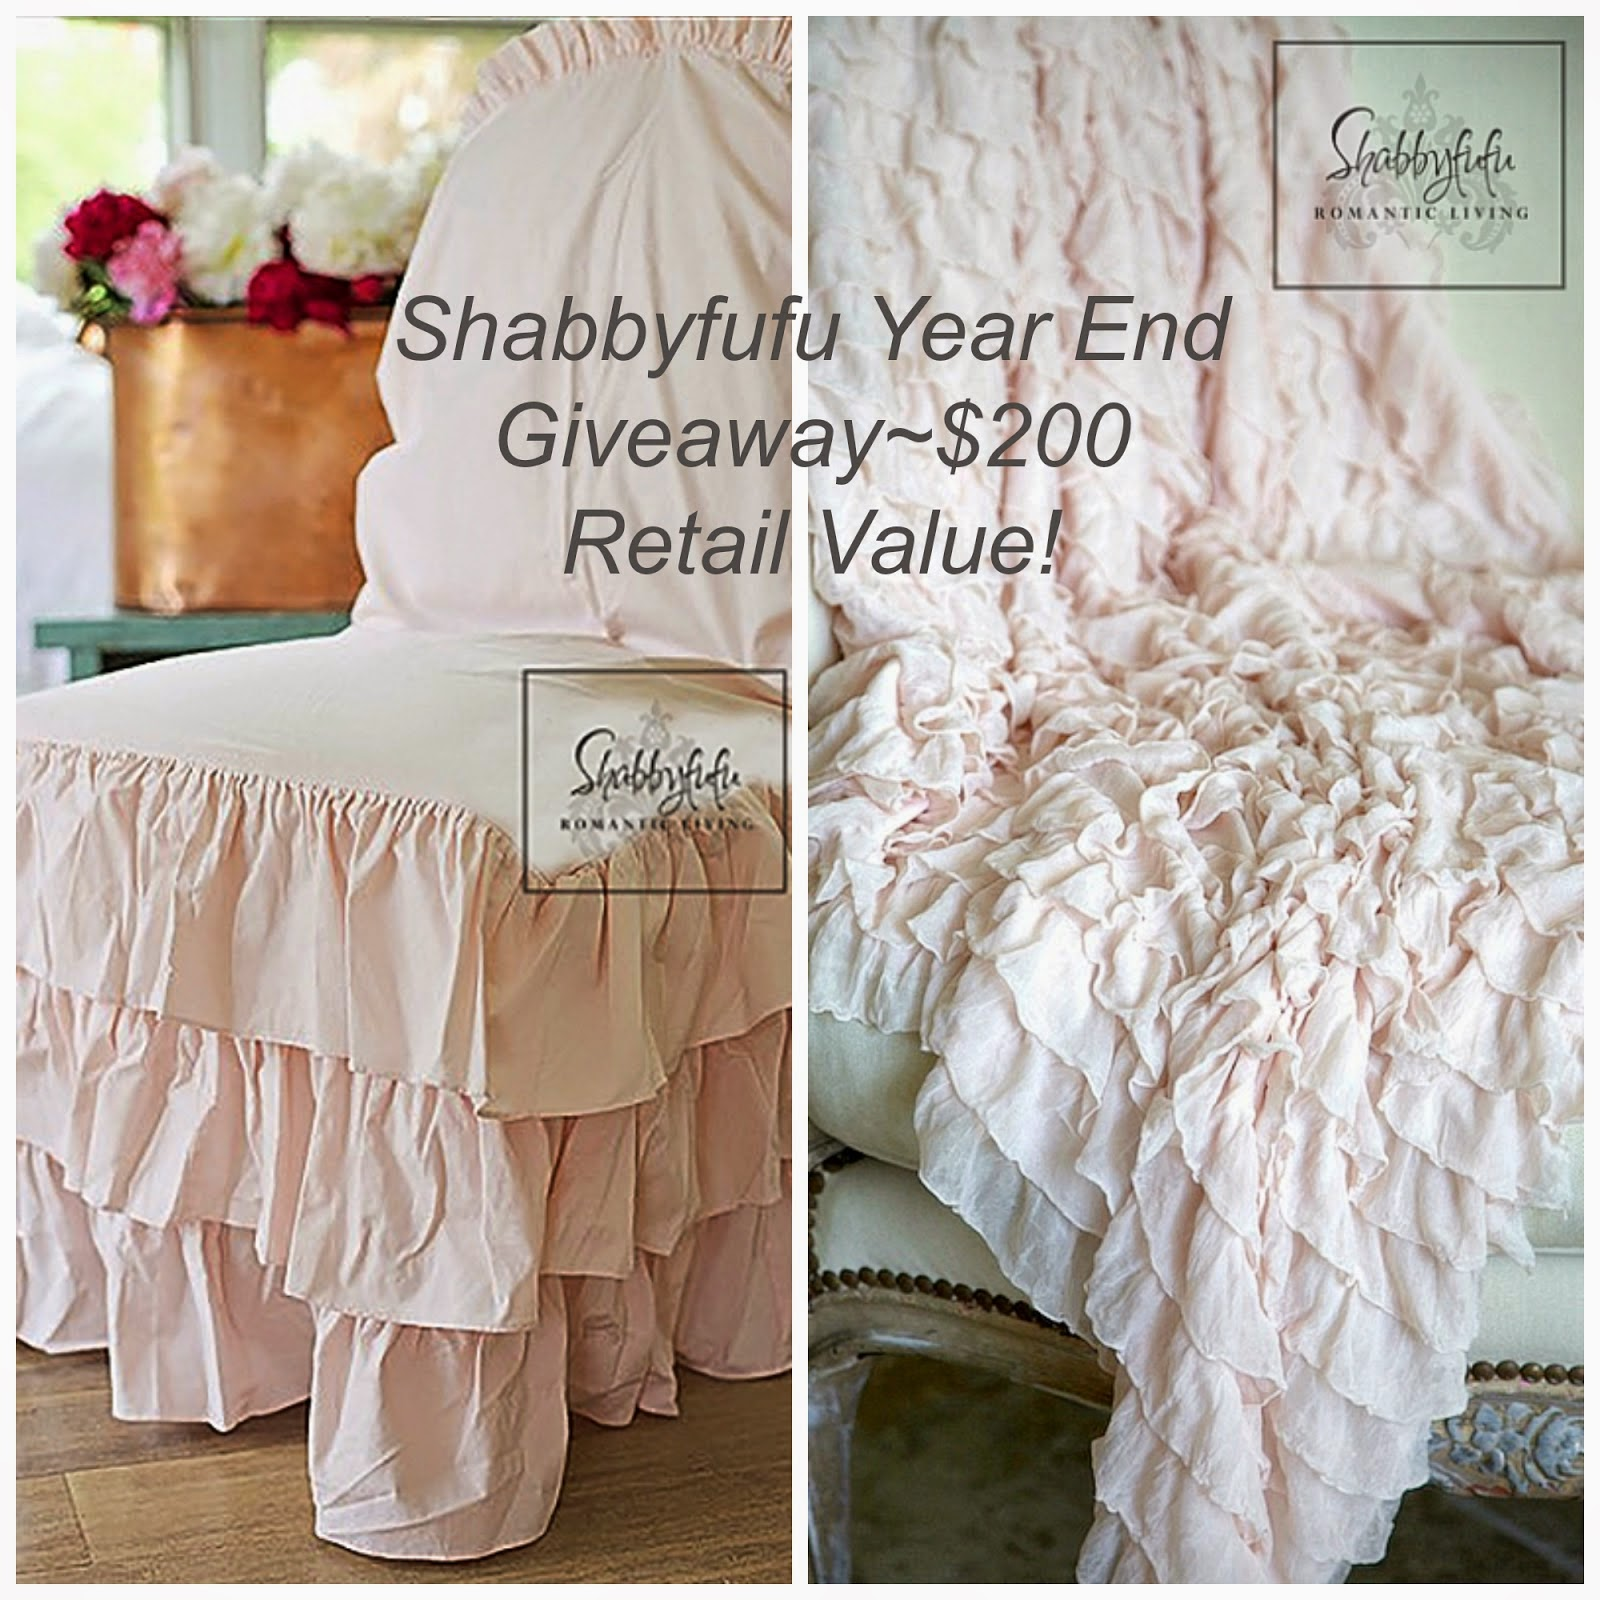 Beautiful giveaway at Shabbyfufu...